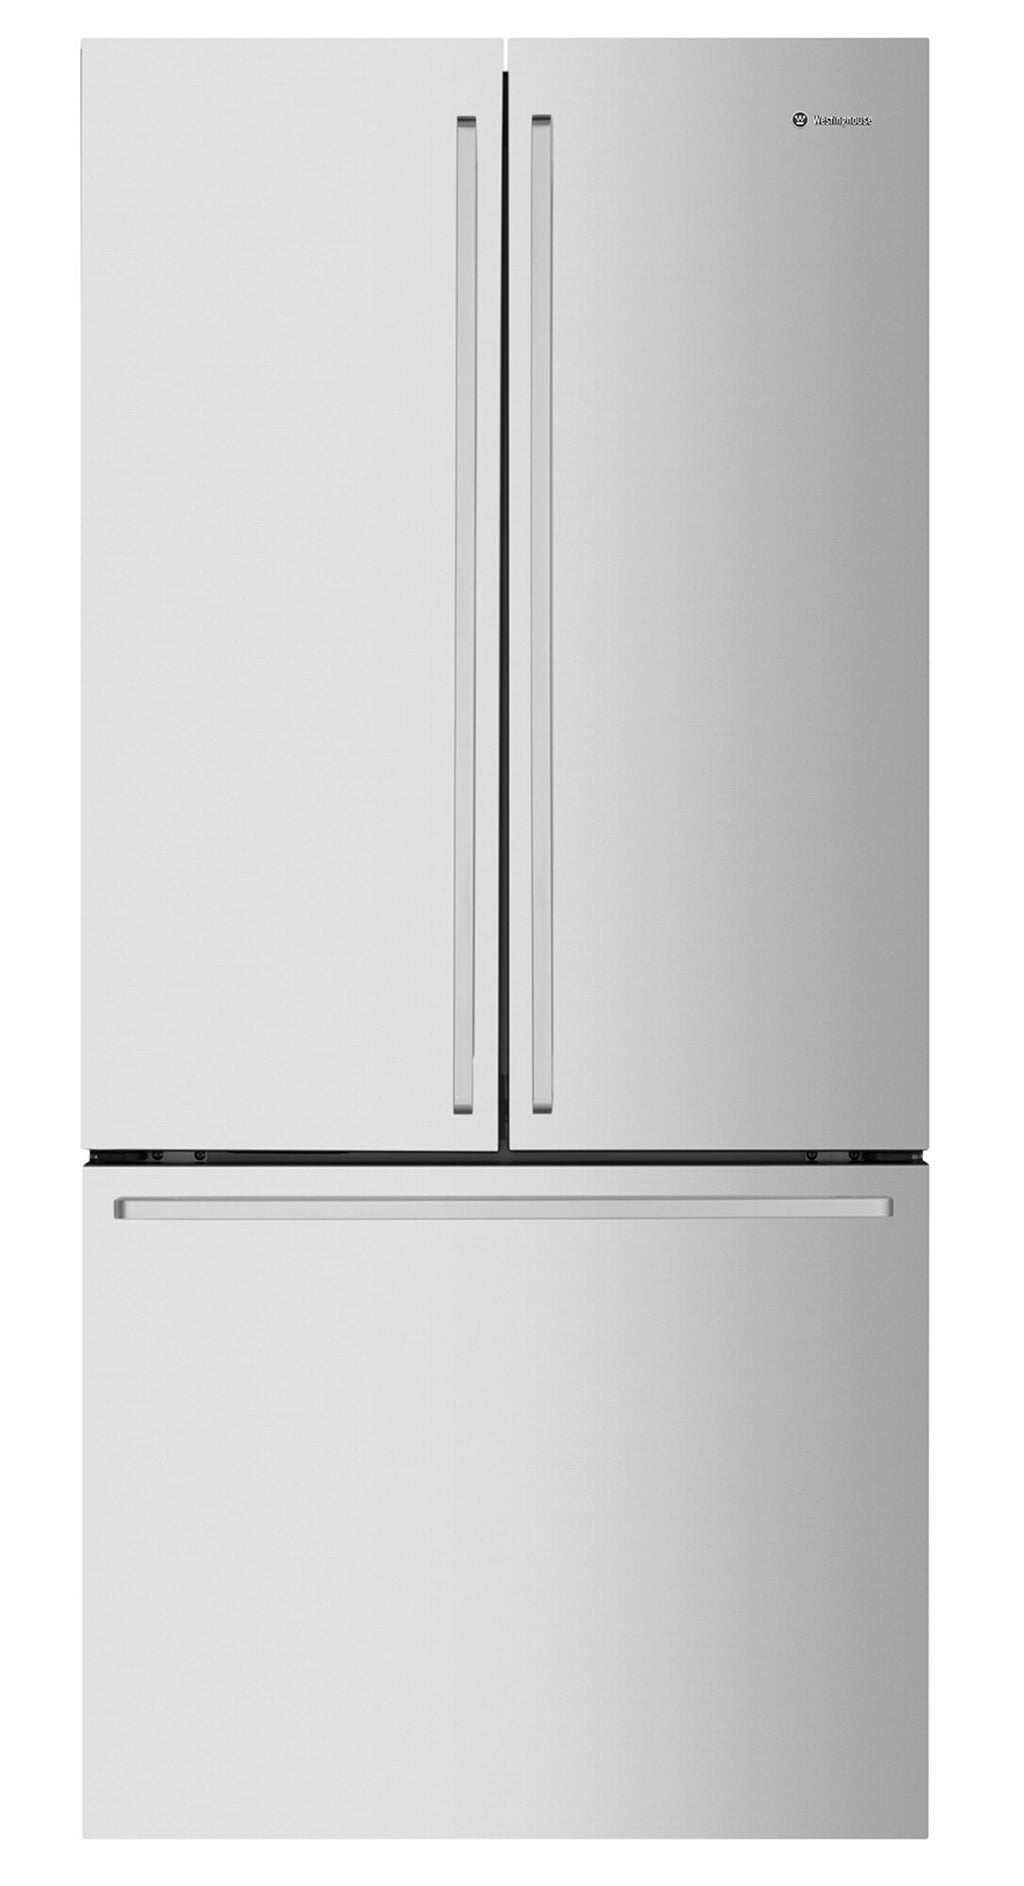 Westinghouse French Door Fridge 524L - Brisbane Home Appliances